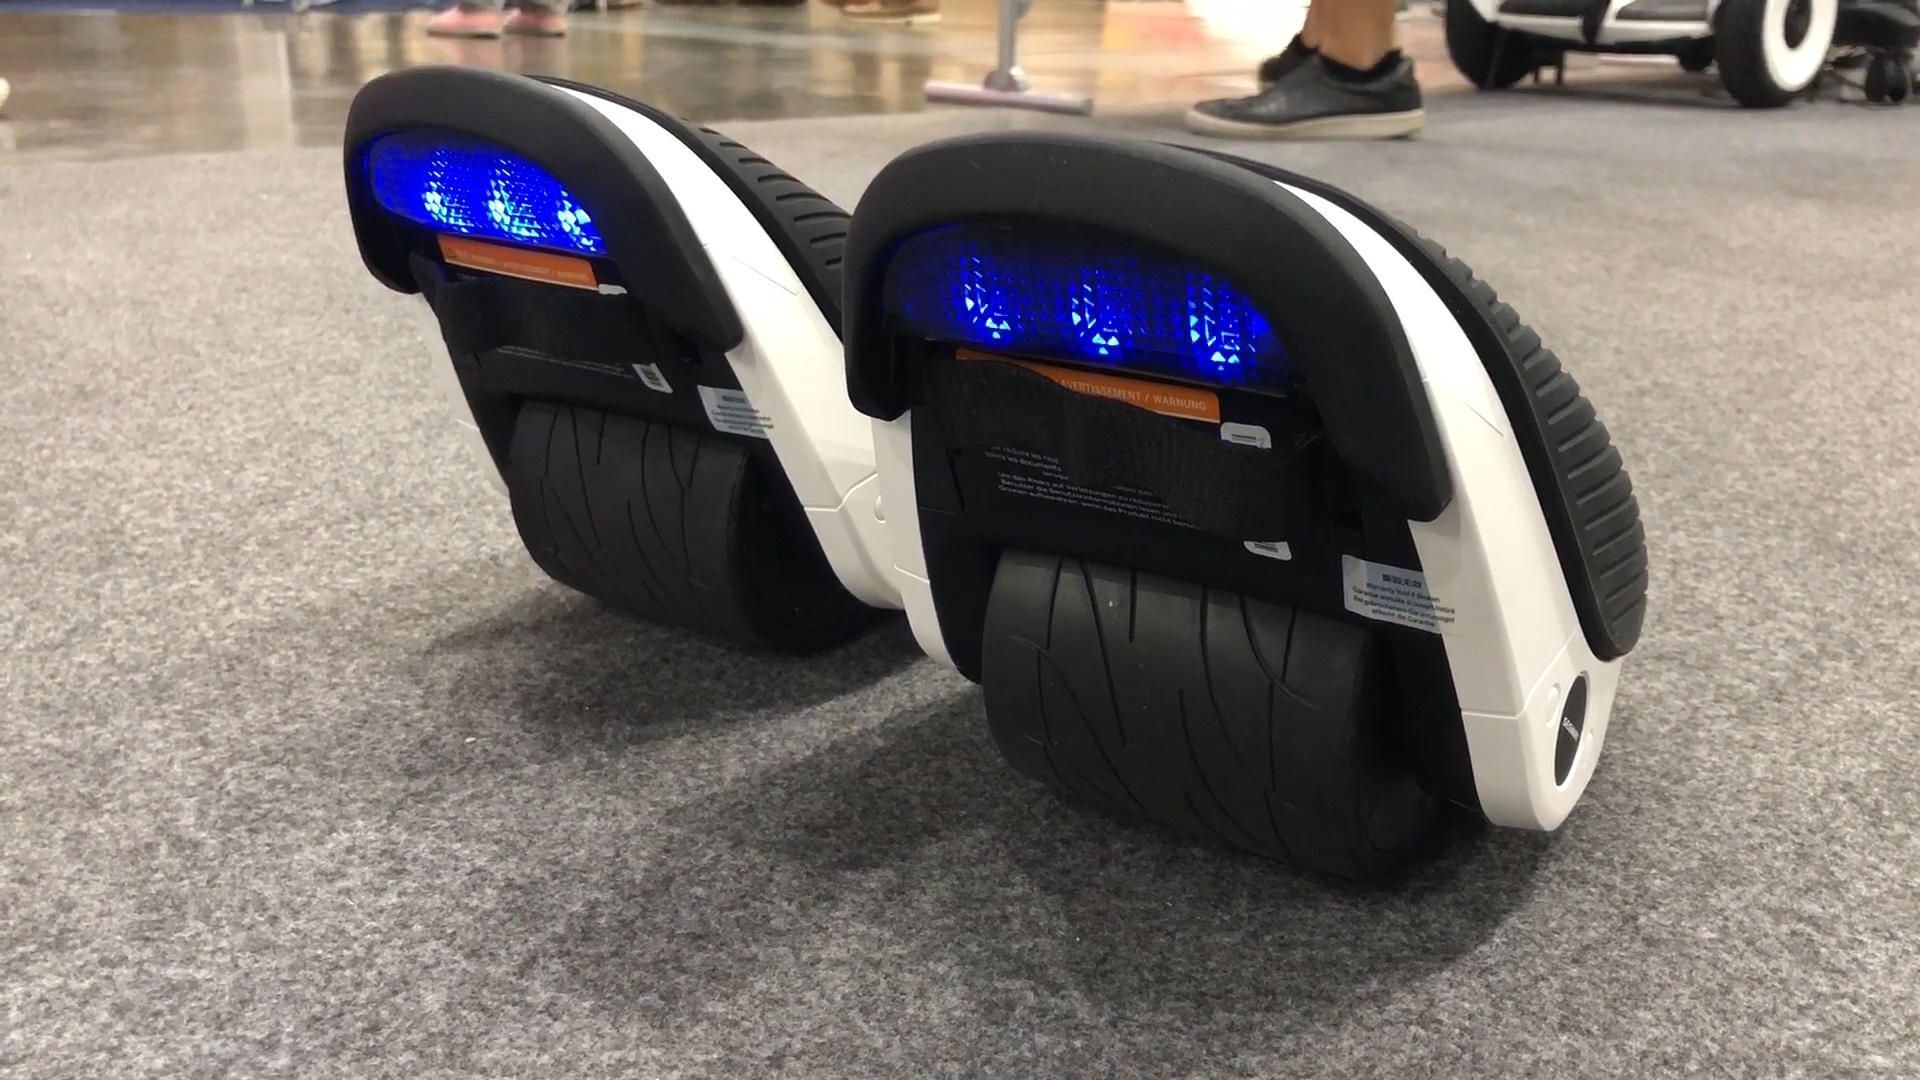 Xiaomi Ninebot Segway Drift W1 Offered at $369.99 [Coupon]